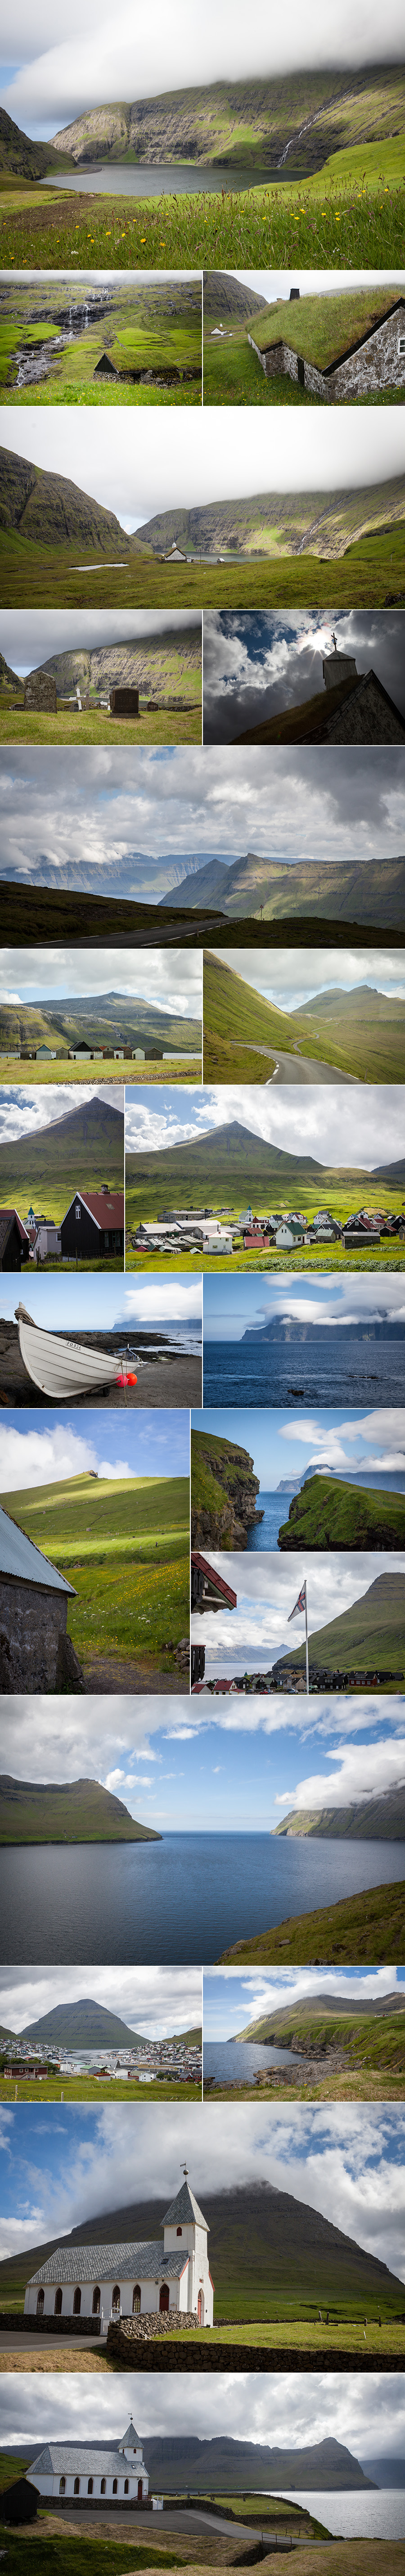 Faroe islands wedding photographer